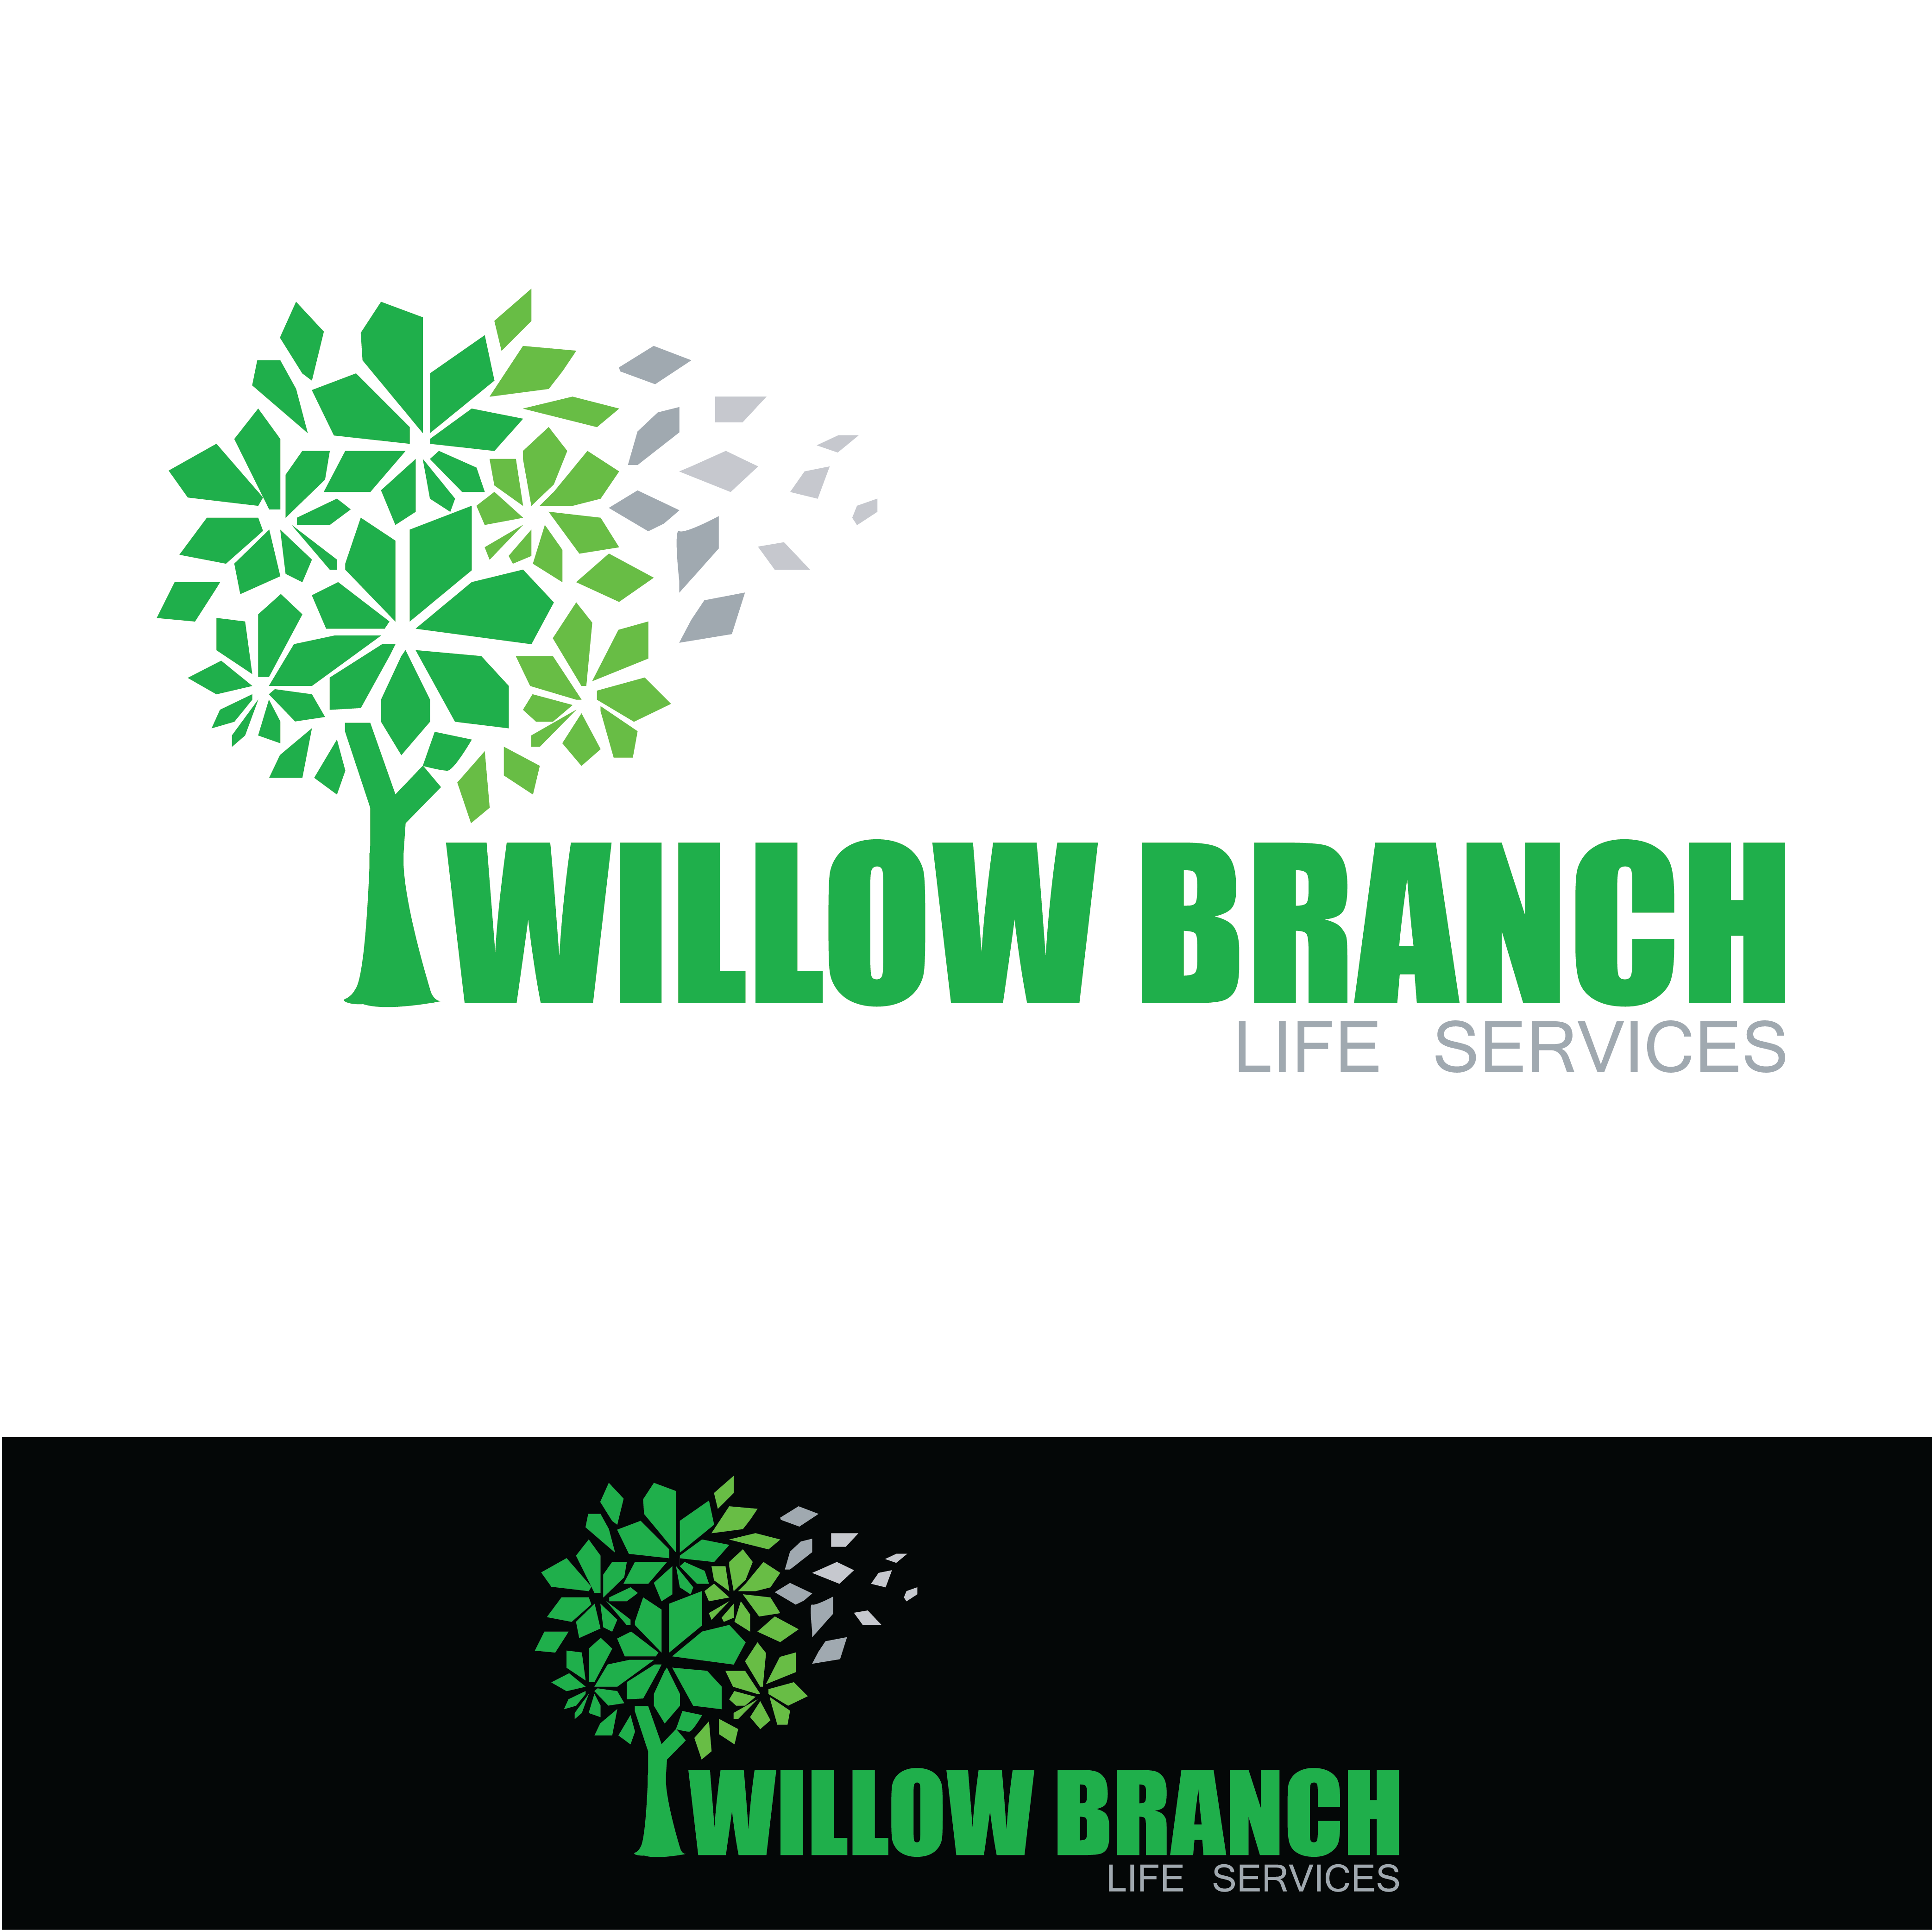 Logo Design by pojas12 - Entry No. 425 in the Logo Design Contest Artistic Logo Design for Willow Branch Life Service.